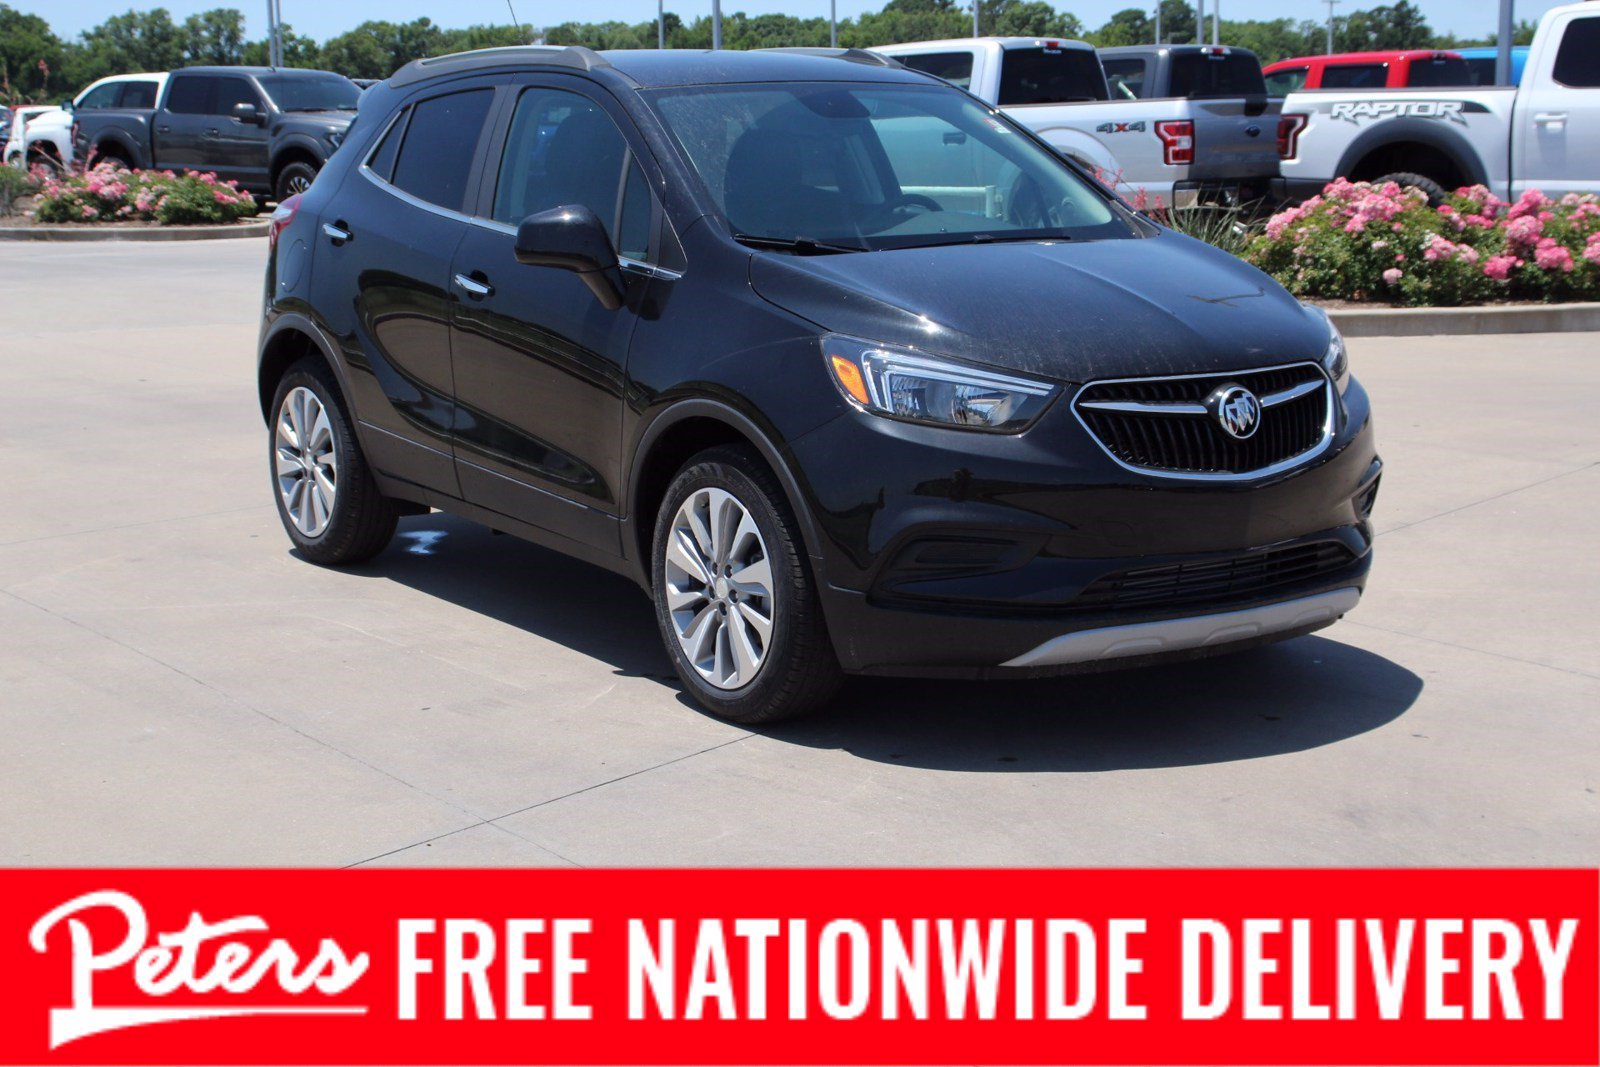 New 2020 Buick Encore Preferred Fwd Suv 2021 Buick Encore Oil Capacity, Owner's Manual, Color Options